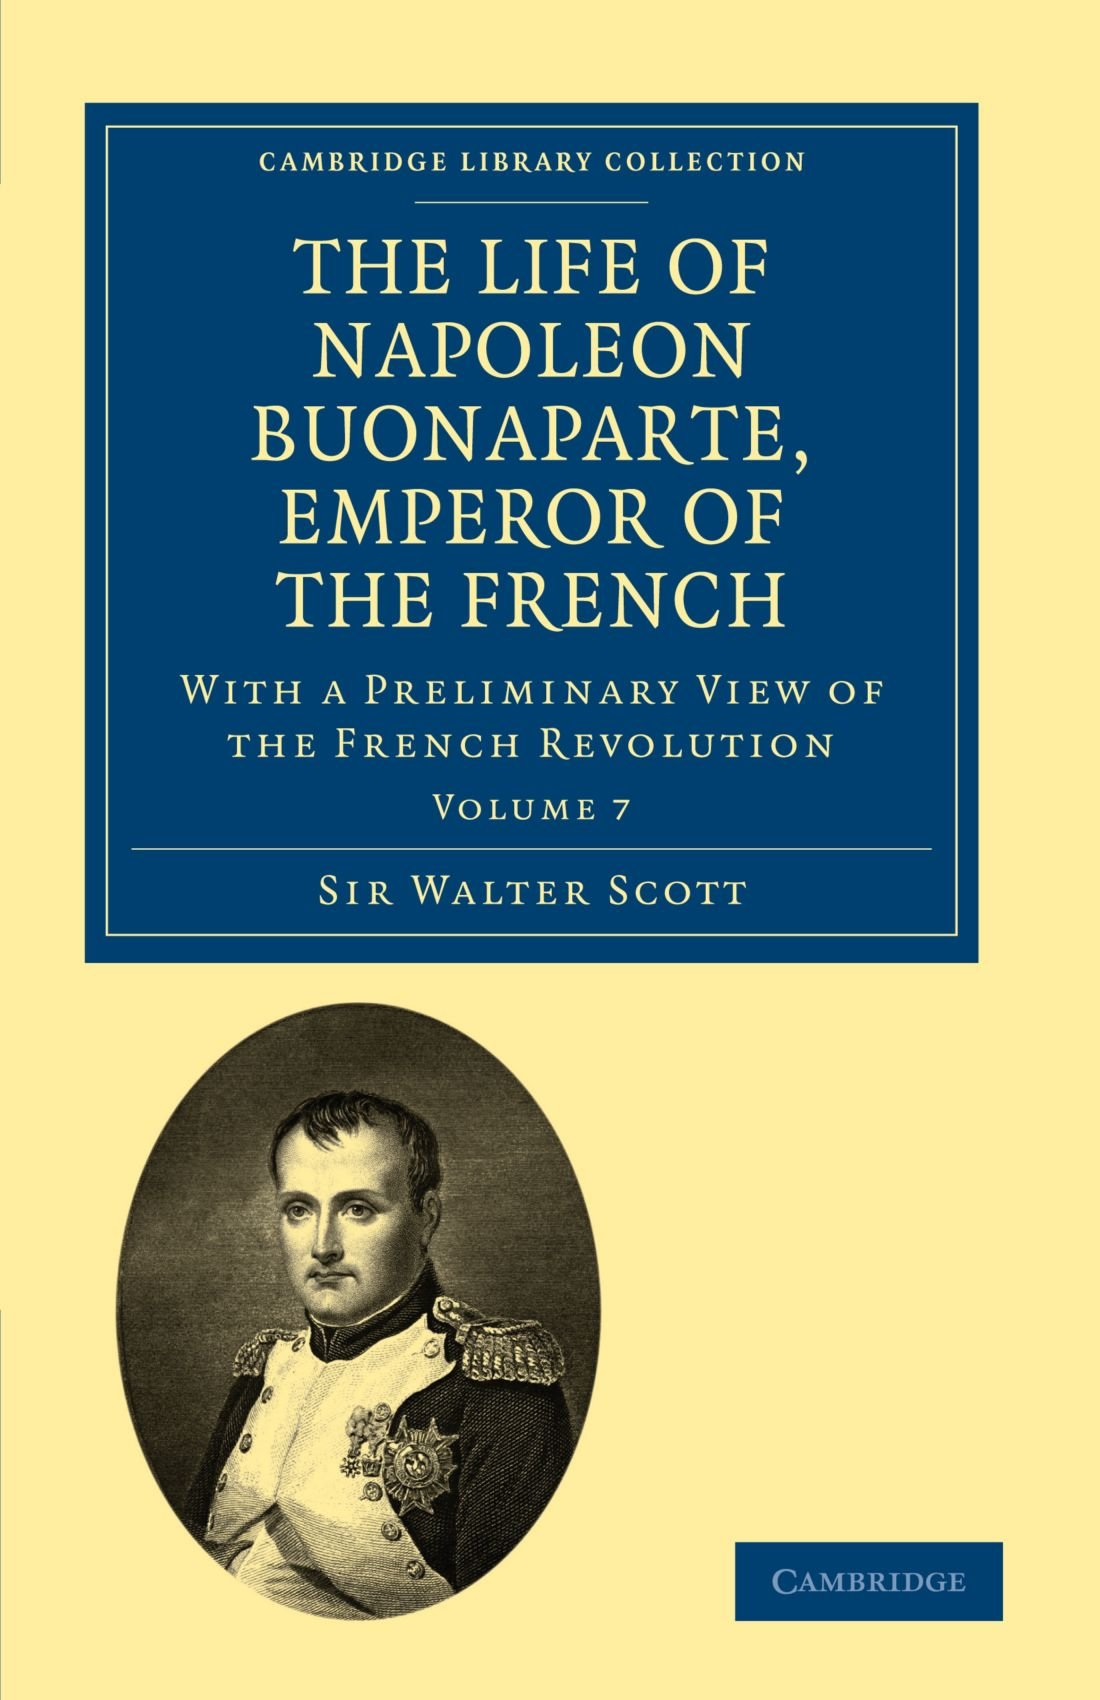 The Life of Napoleon Buonaparte, Emperor of the French: With a Preliminary View of the French Revolution (Cambridge Library Collection - European History) (Volume 7) pdf